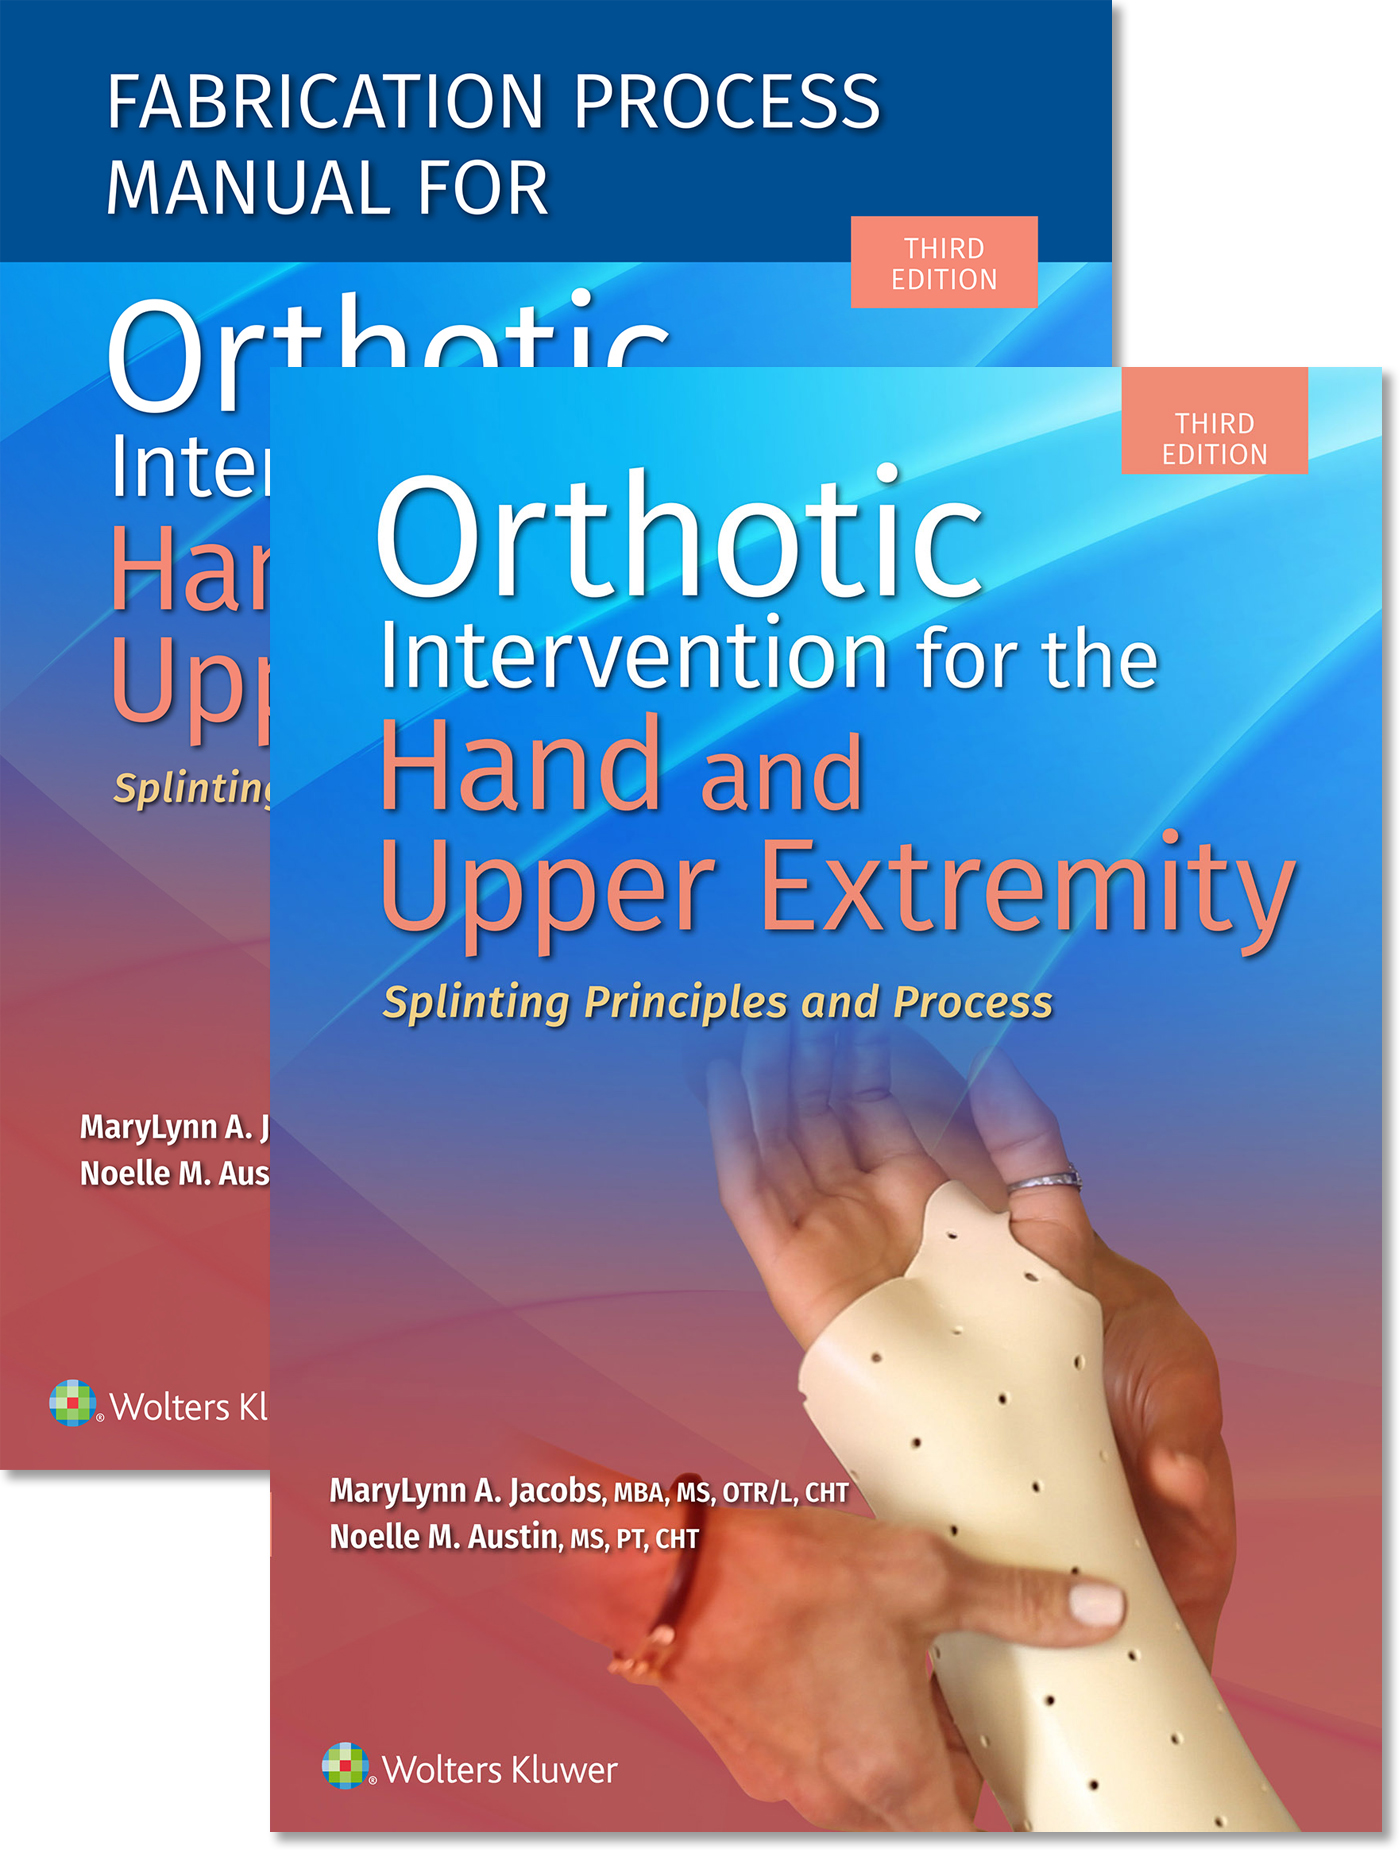 Orthotic Intervention for the Hand and Upper Extremity, Textbook and Fabrication Process Manual Package book cover